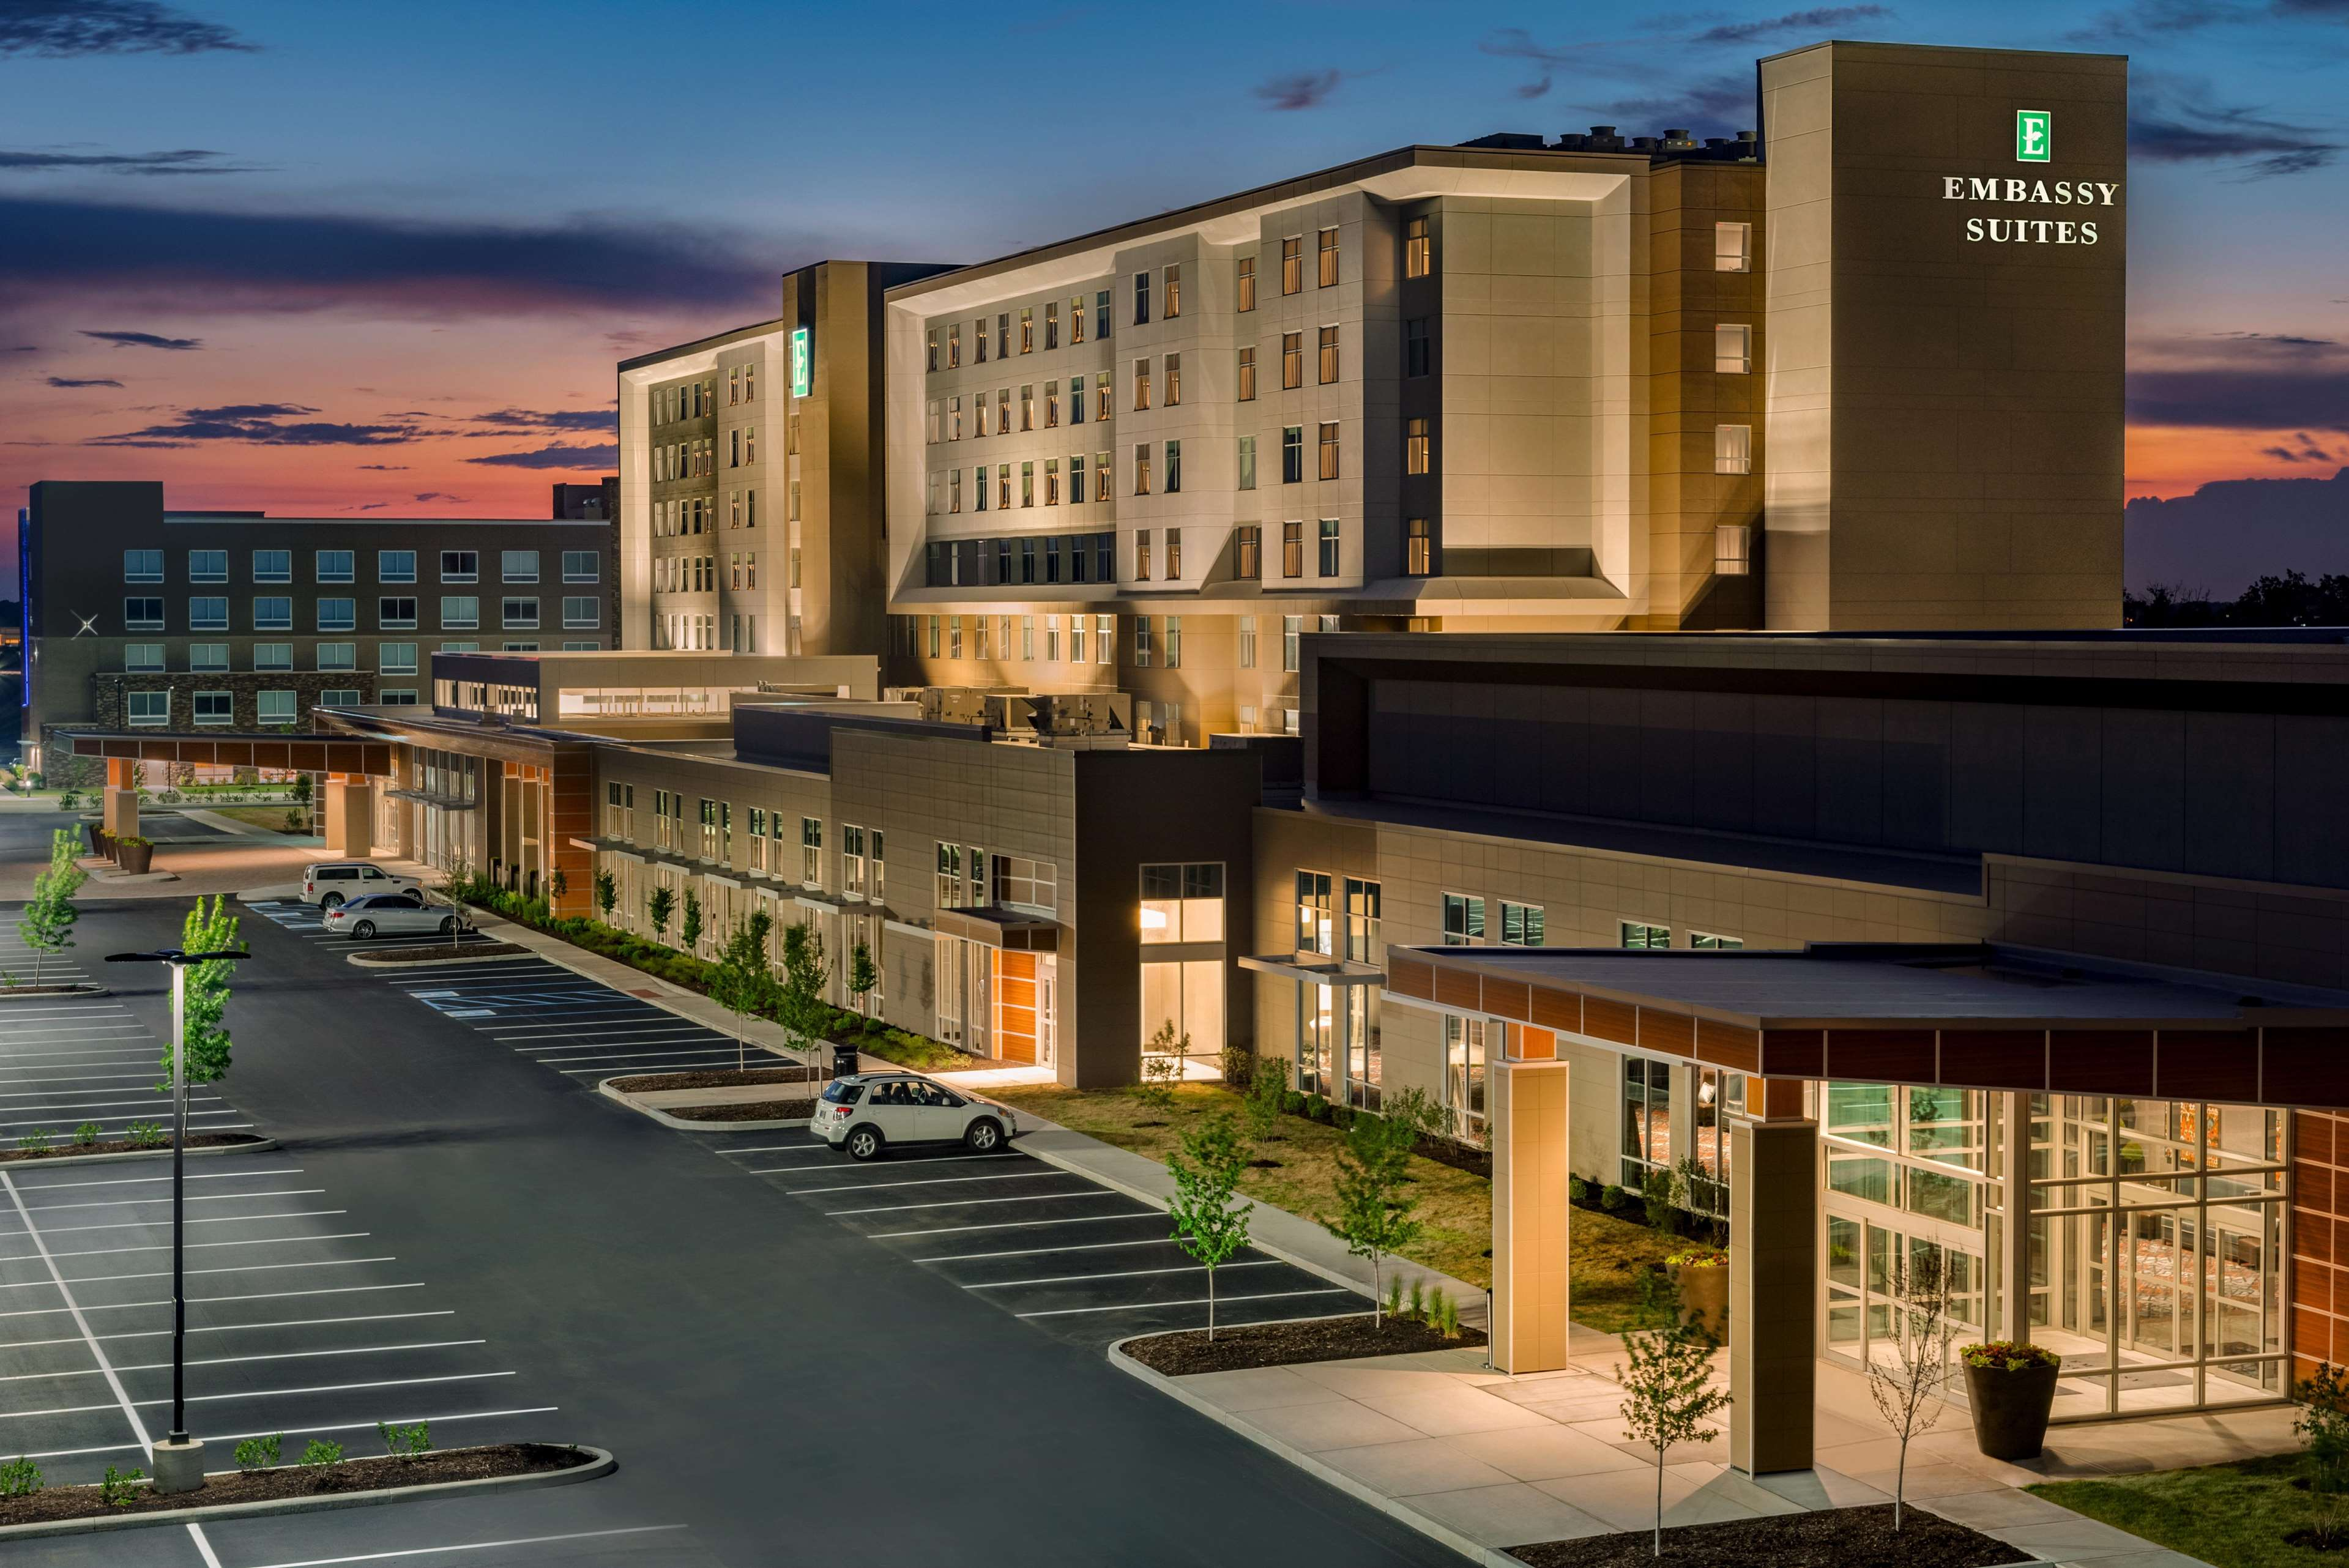 Embassy Suites by Hilton Noblesville Indianapolis Conference Center image 0